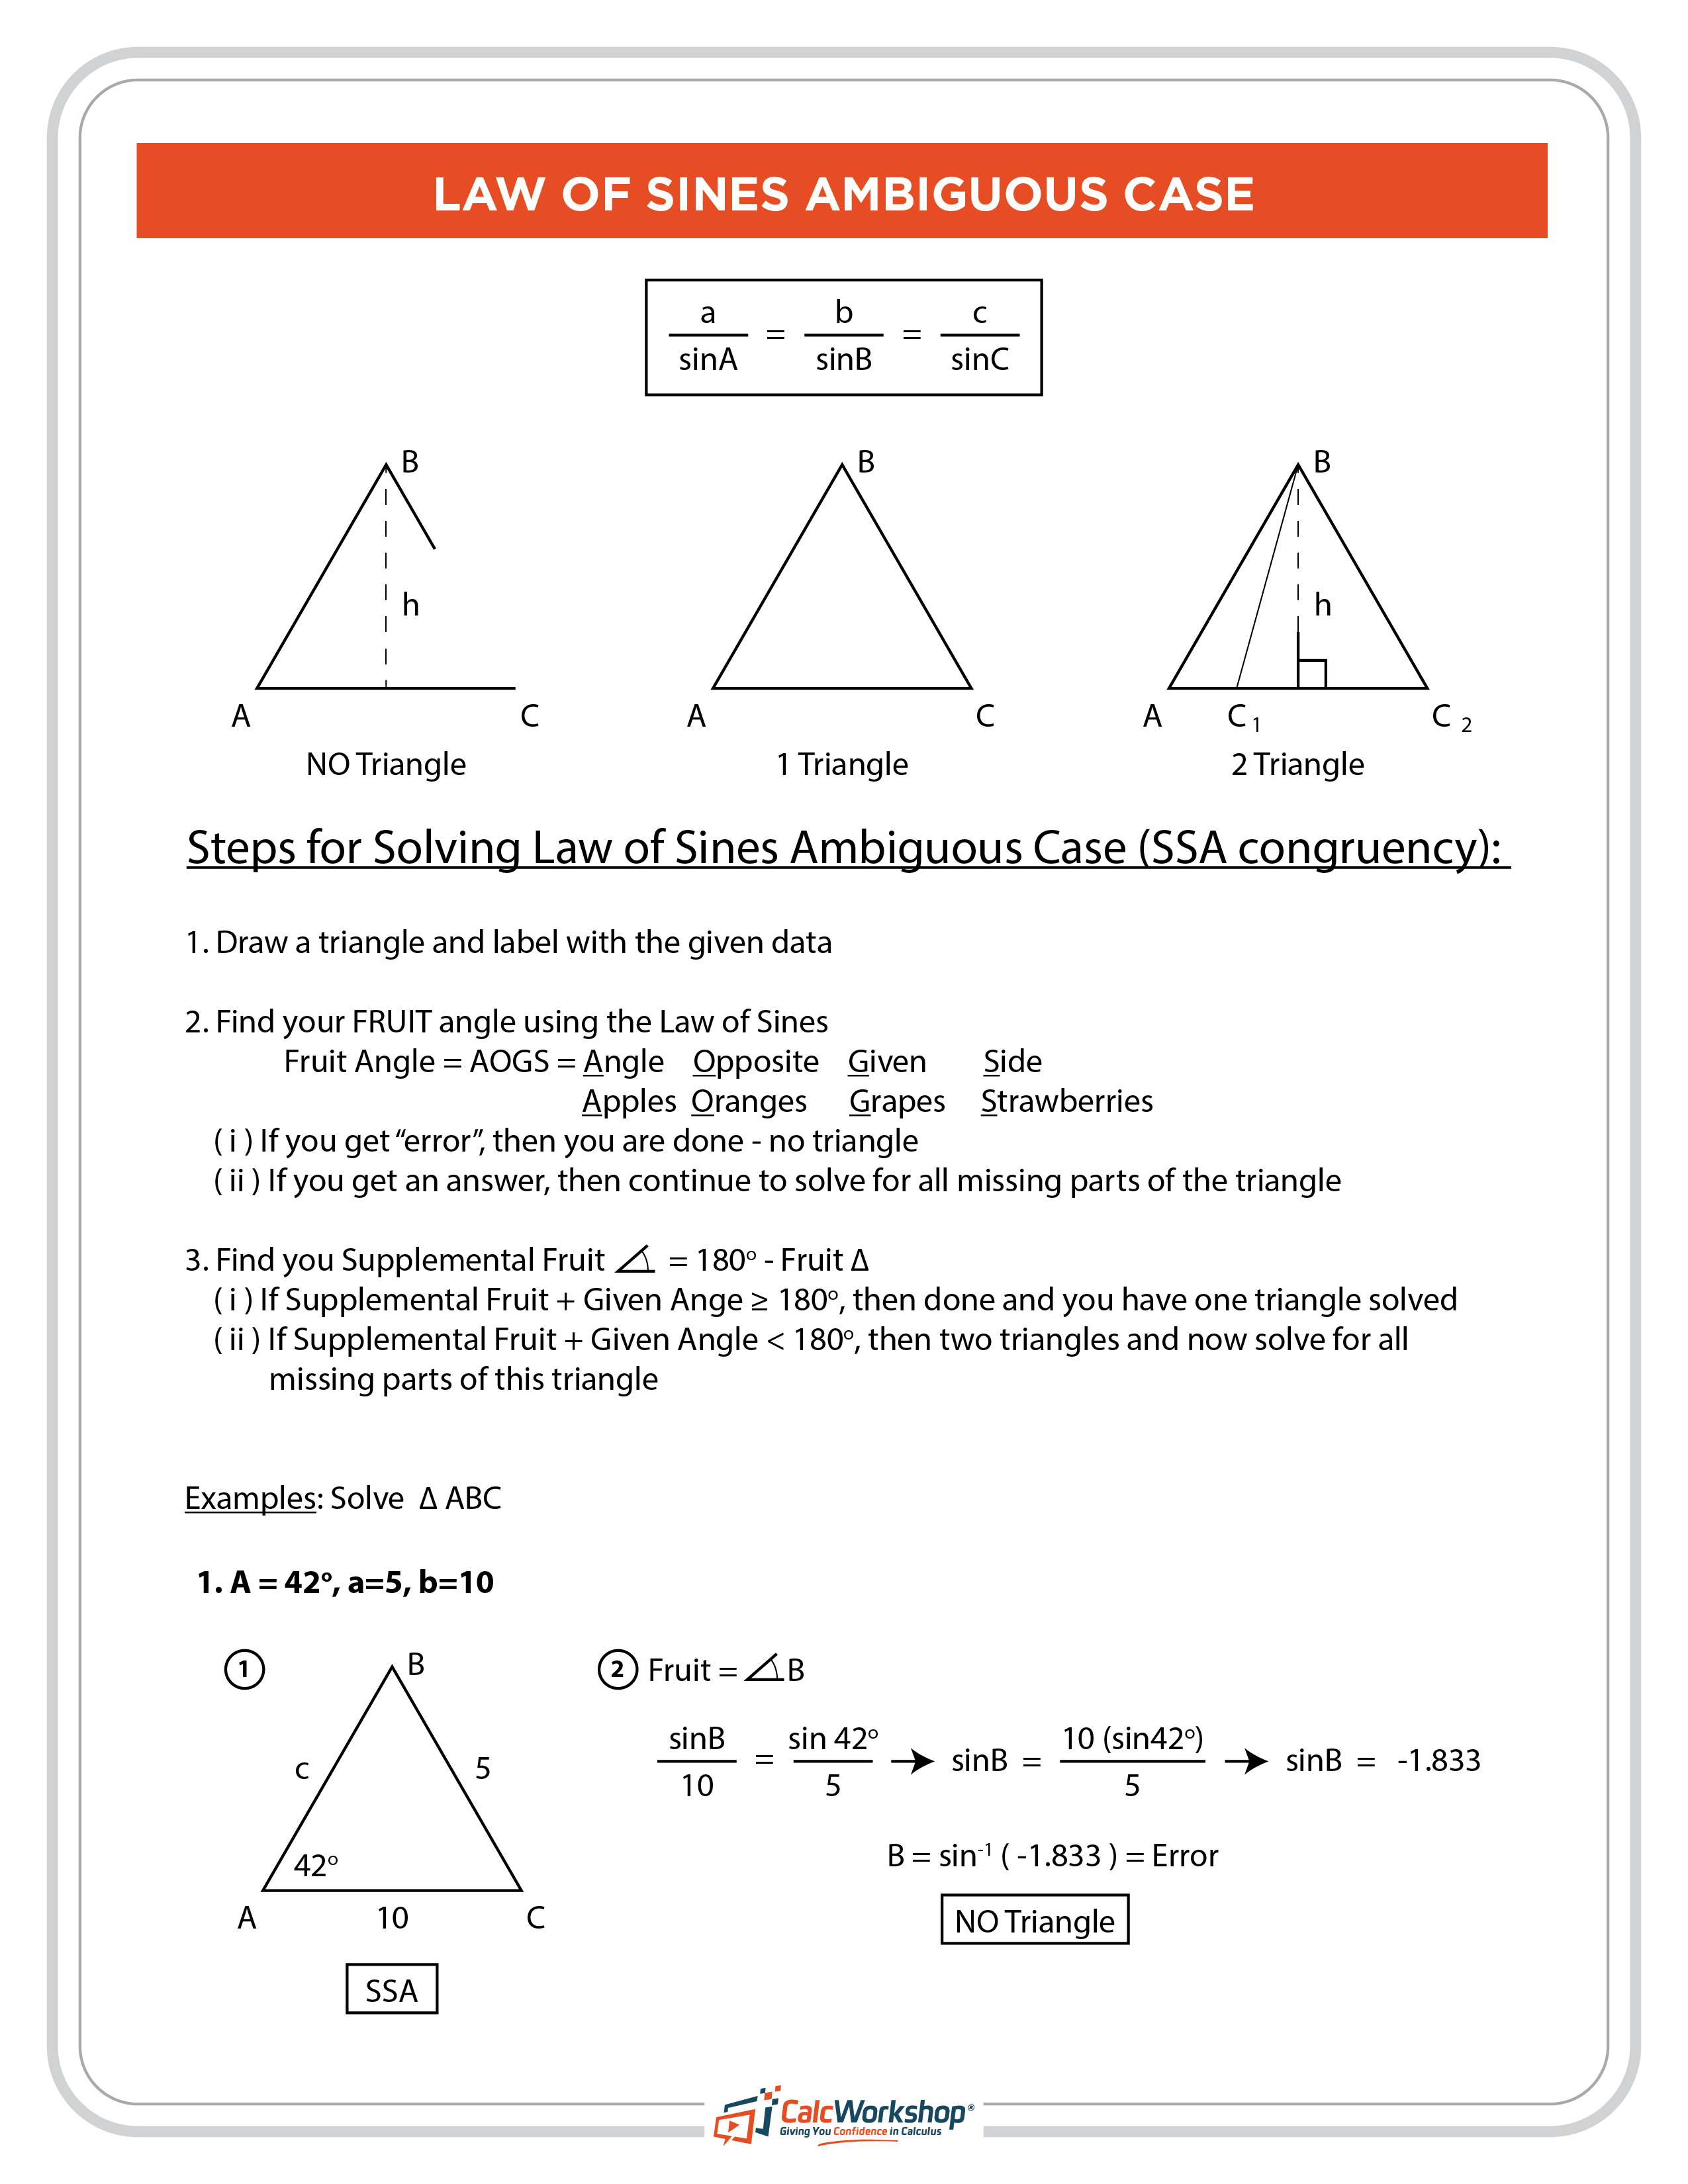 worksheet Law Of Sines Worksheet Pdf innovative way to solve the law of sines ambiguous case pdf for which includes formula steps solve